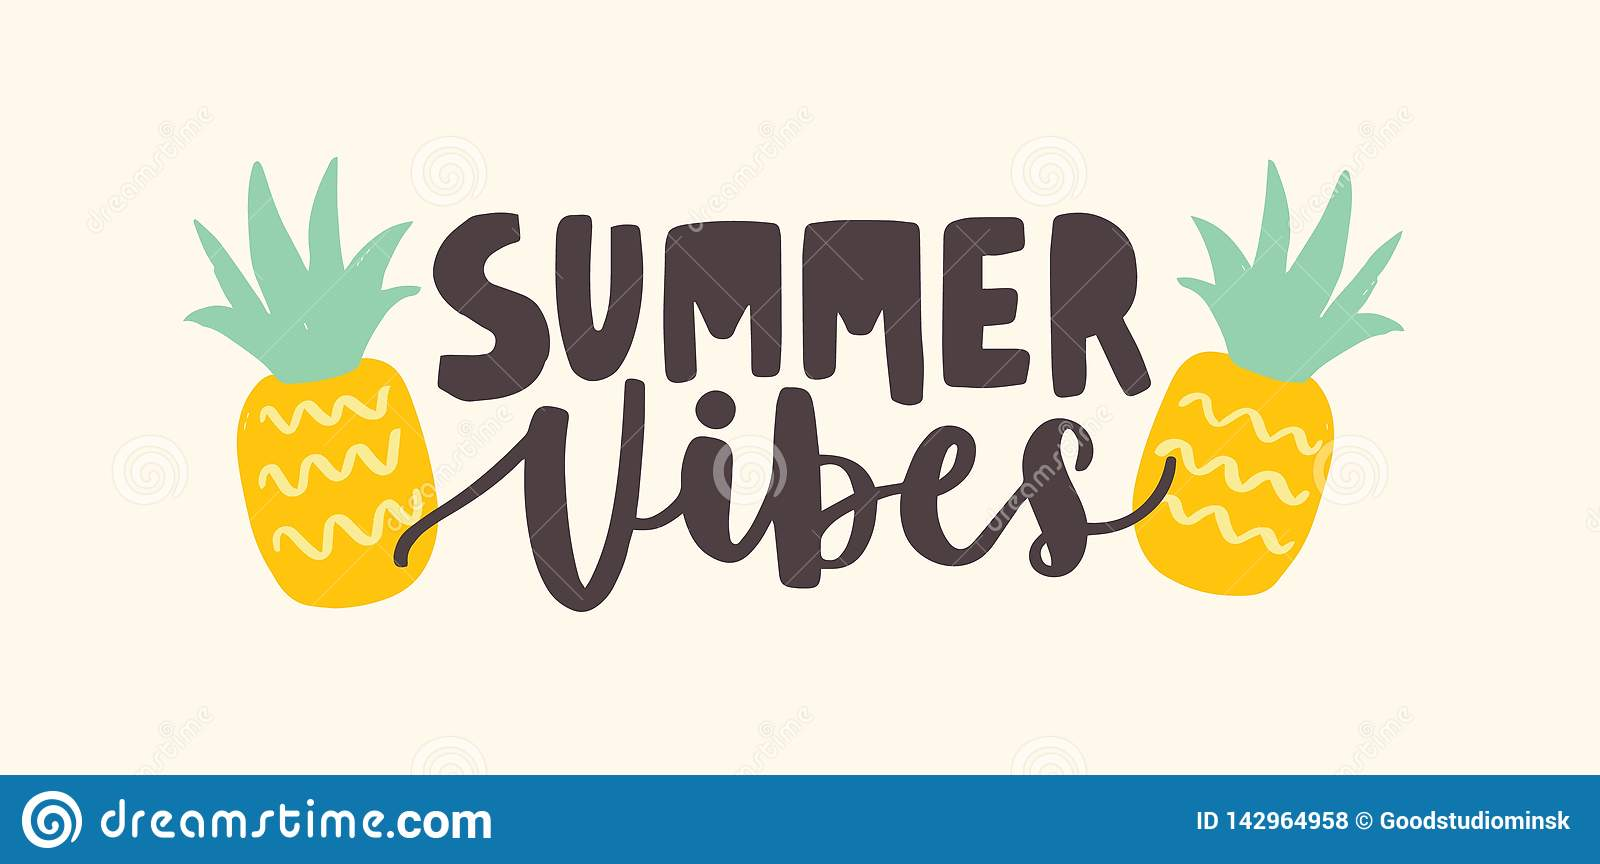 3D Printed T-Shirts Summer Vacation Phrase with Pineapple Design Element for Po